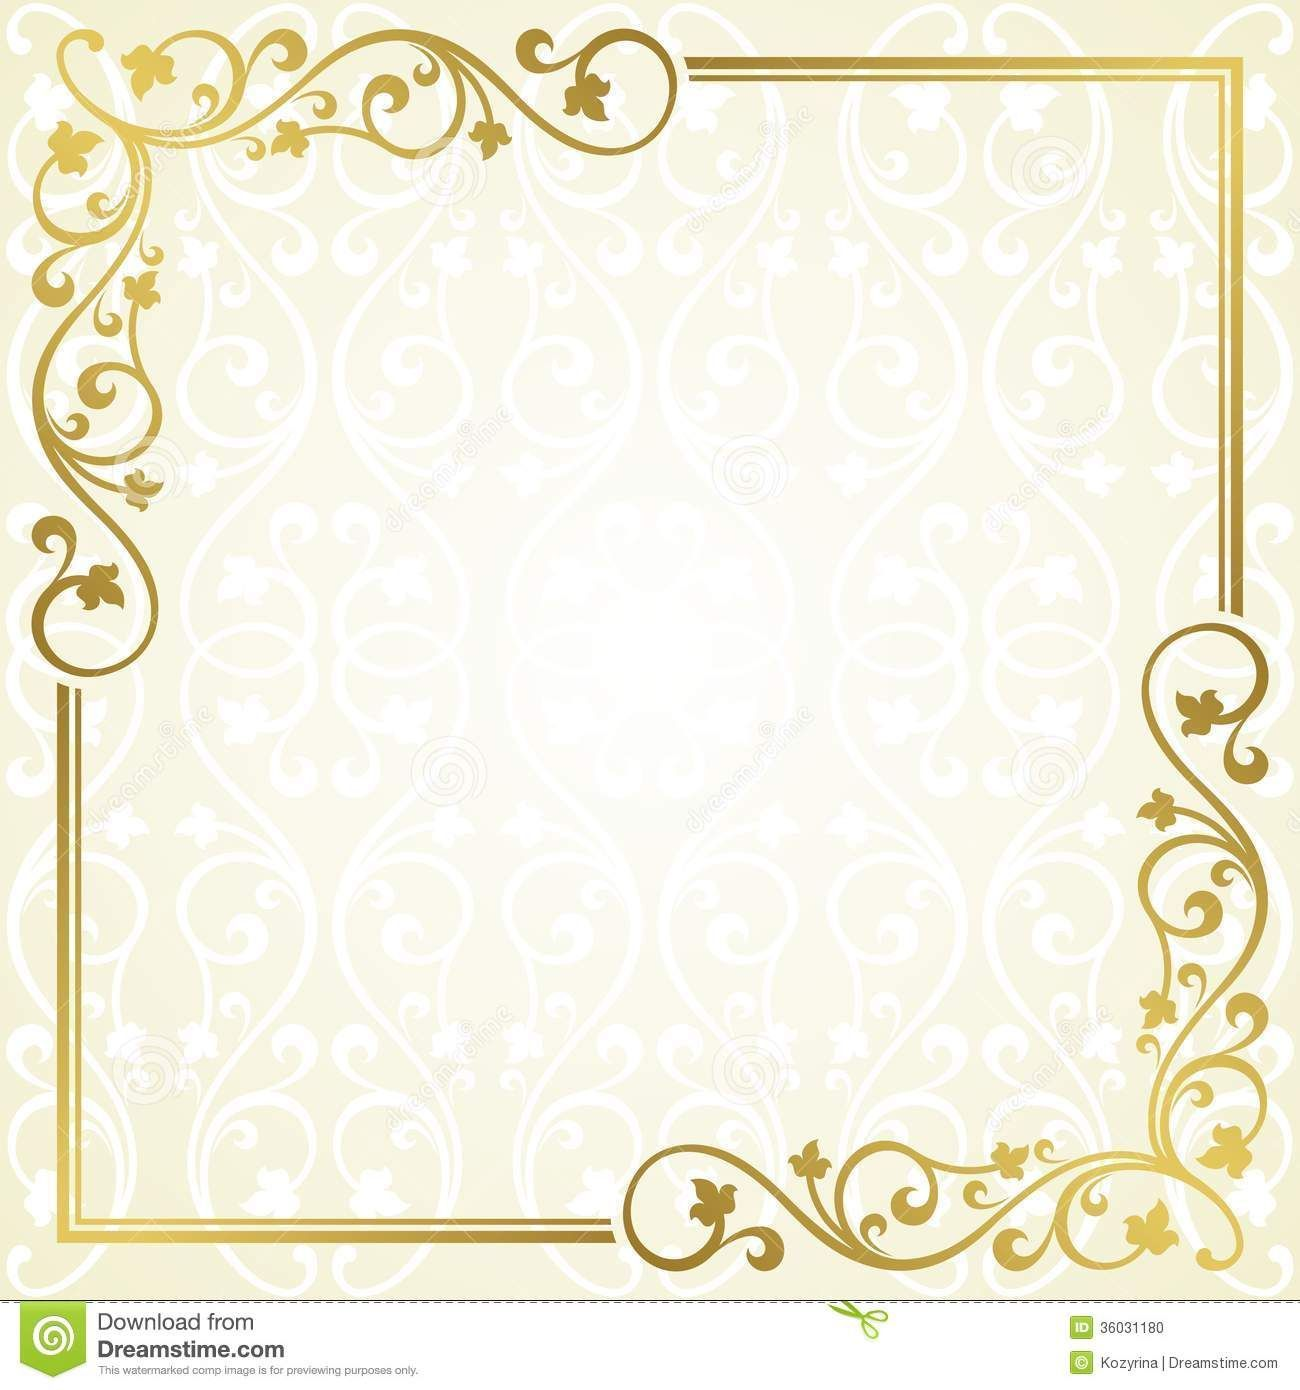 14 Unique Blank Invitation Card Hd Photos In 2020 Free Invitation Cards Plain Wedding Invitations Invitation Card Format